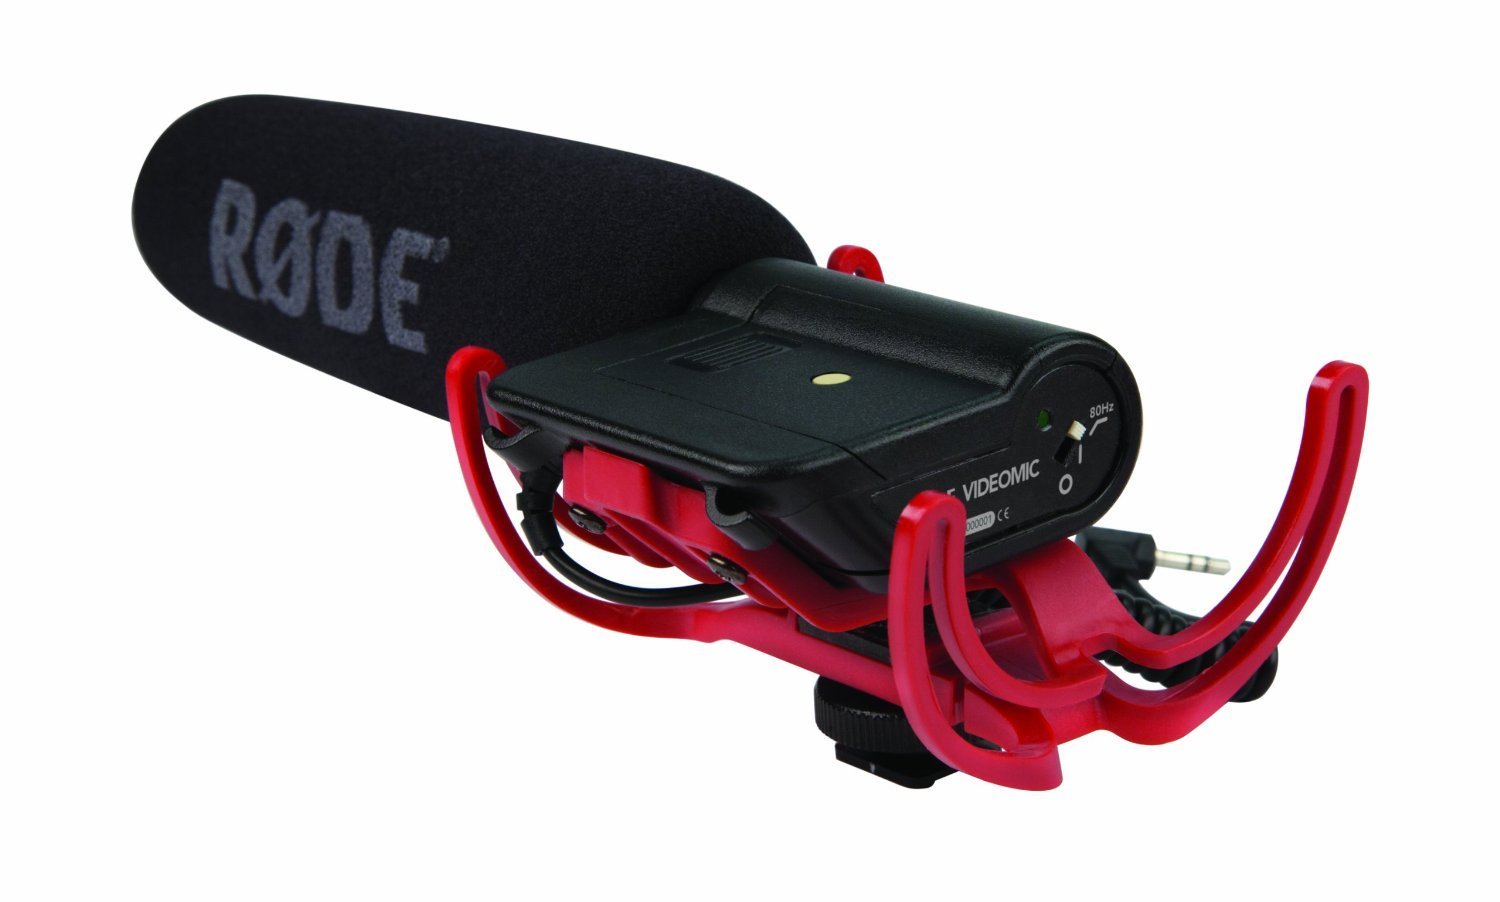 Rode Rycote VideoMic Microphone, camera and VC1 Extension Cable